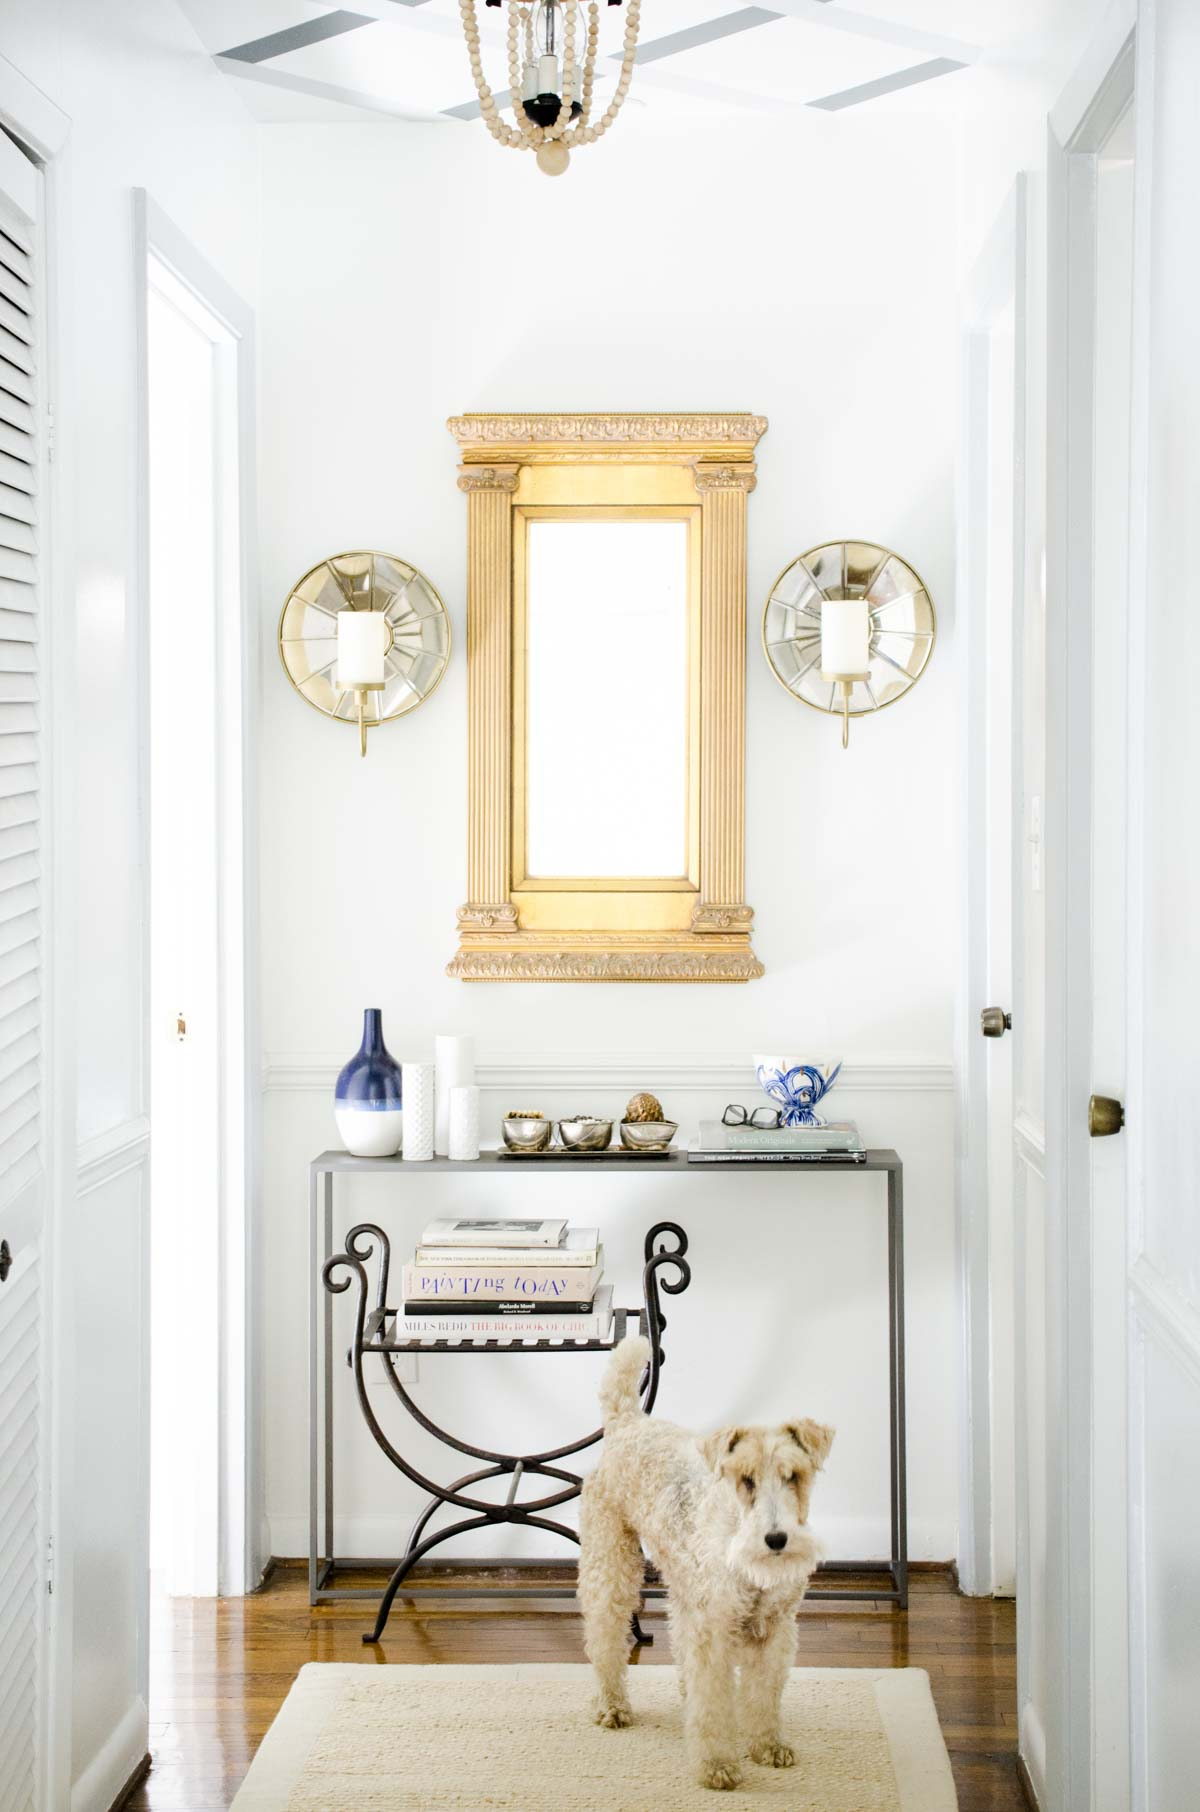 Hallway makeover with gold mirror and lattice ceiling stripes via @thouswellblog